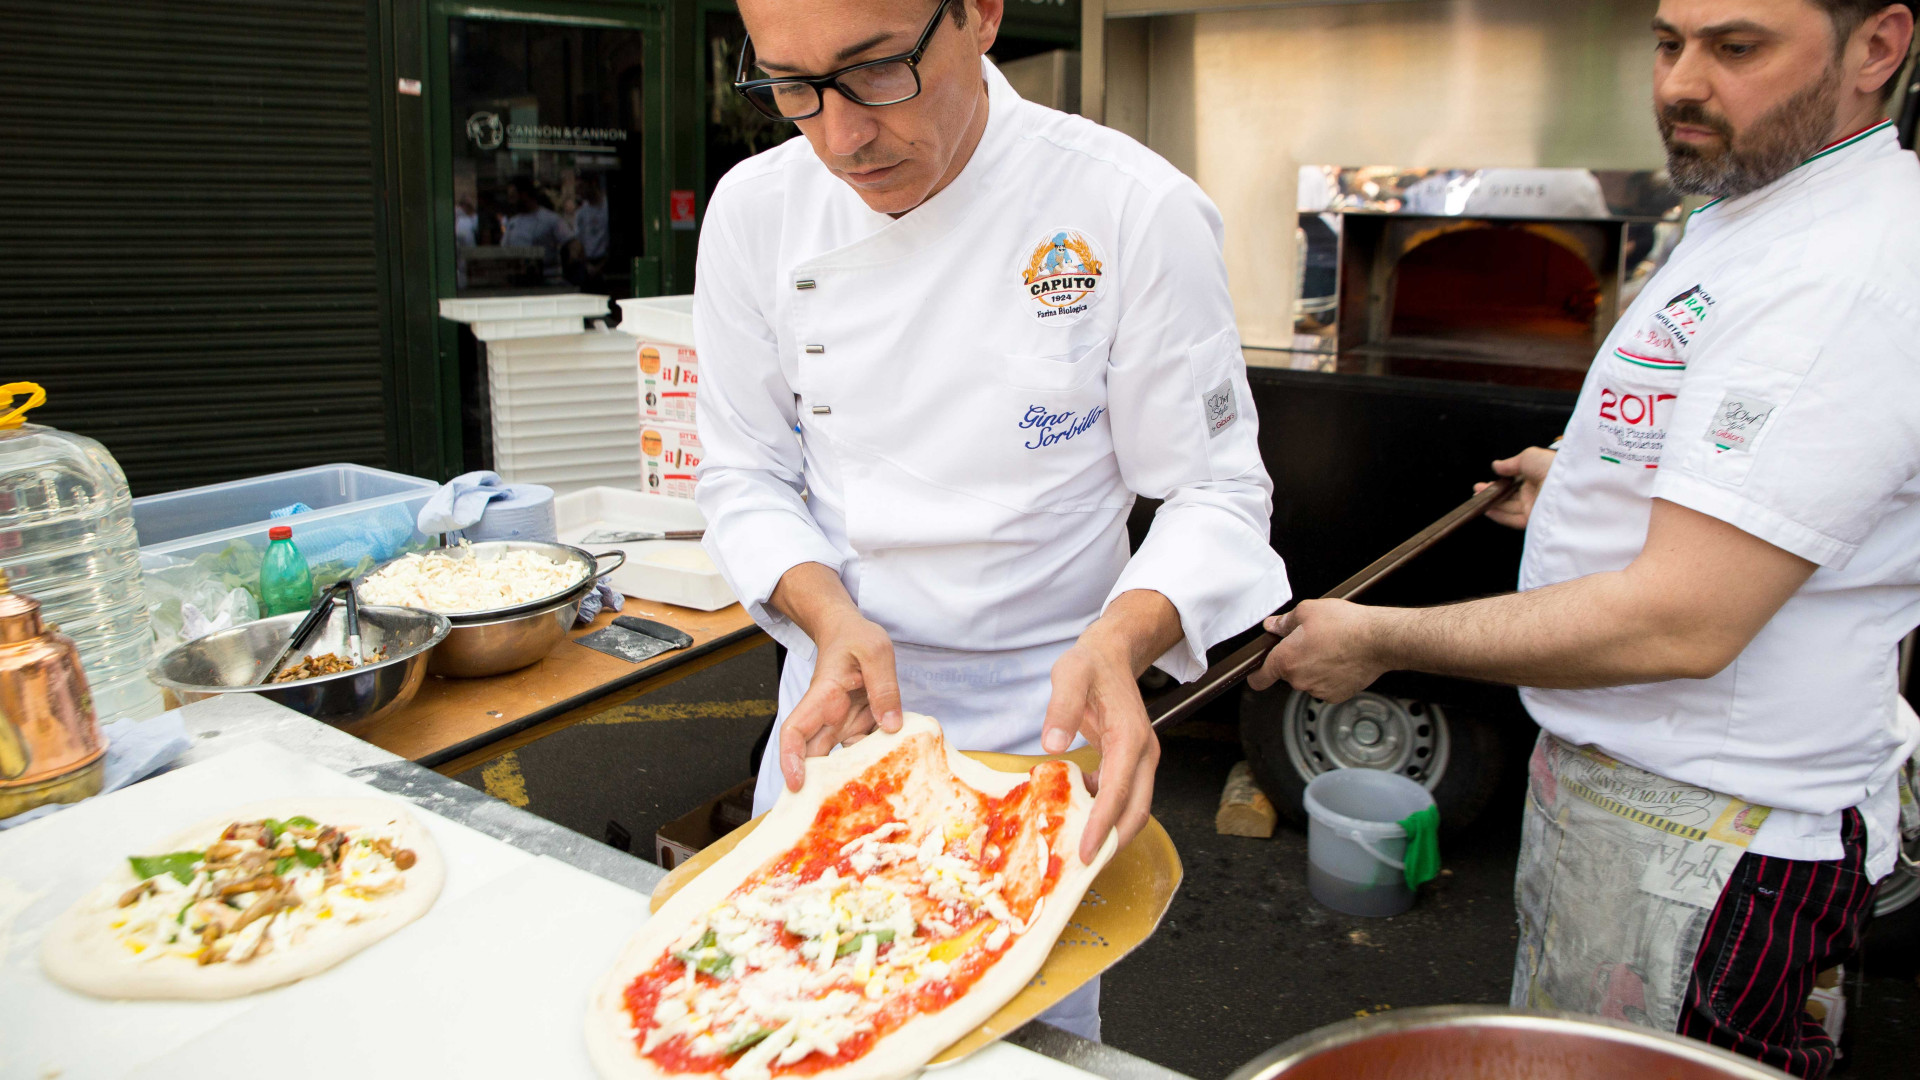 London Pizza Festival at Borough Market